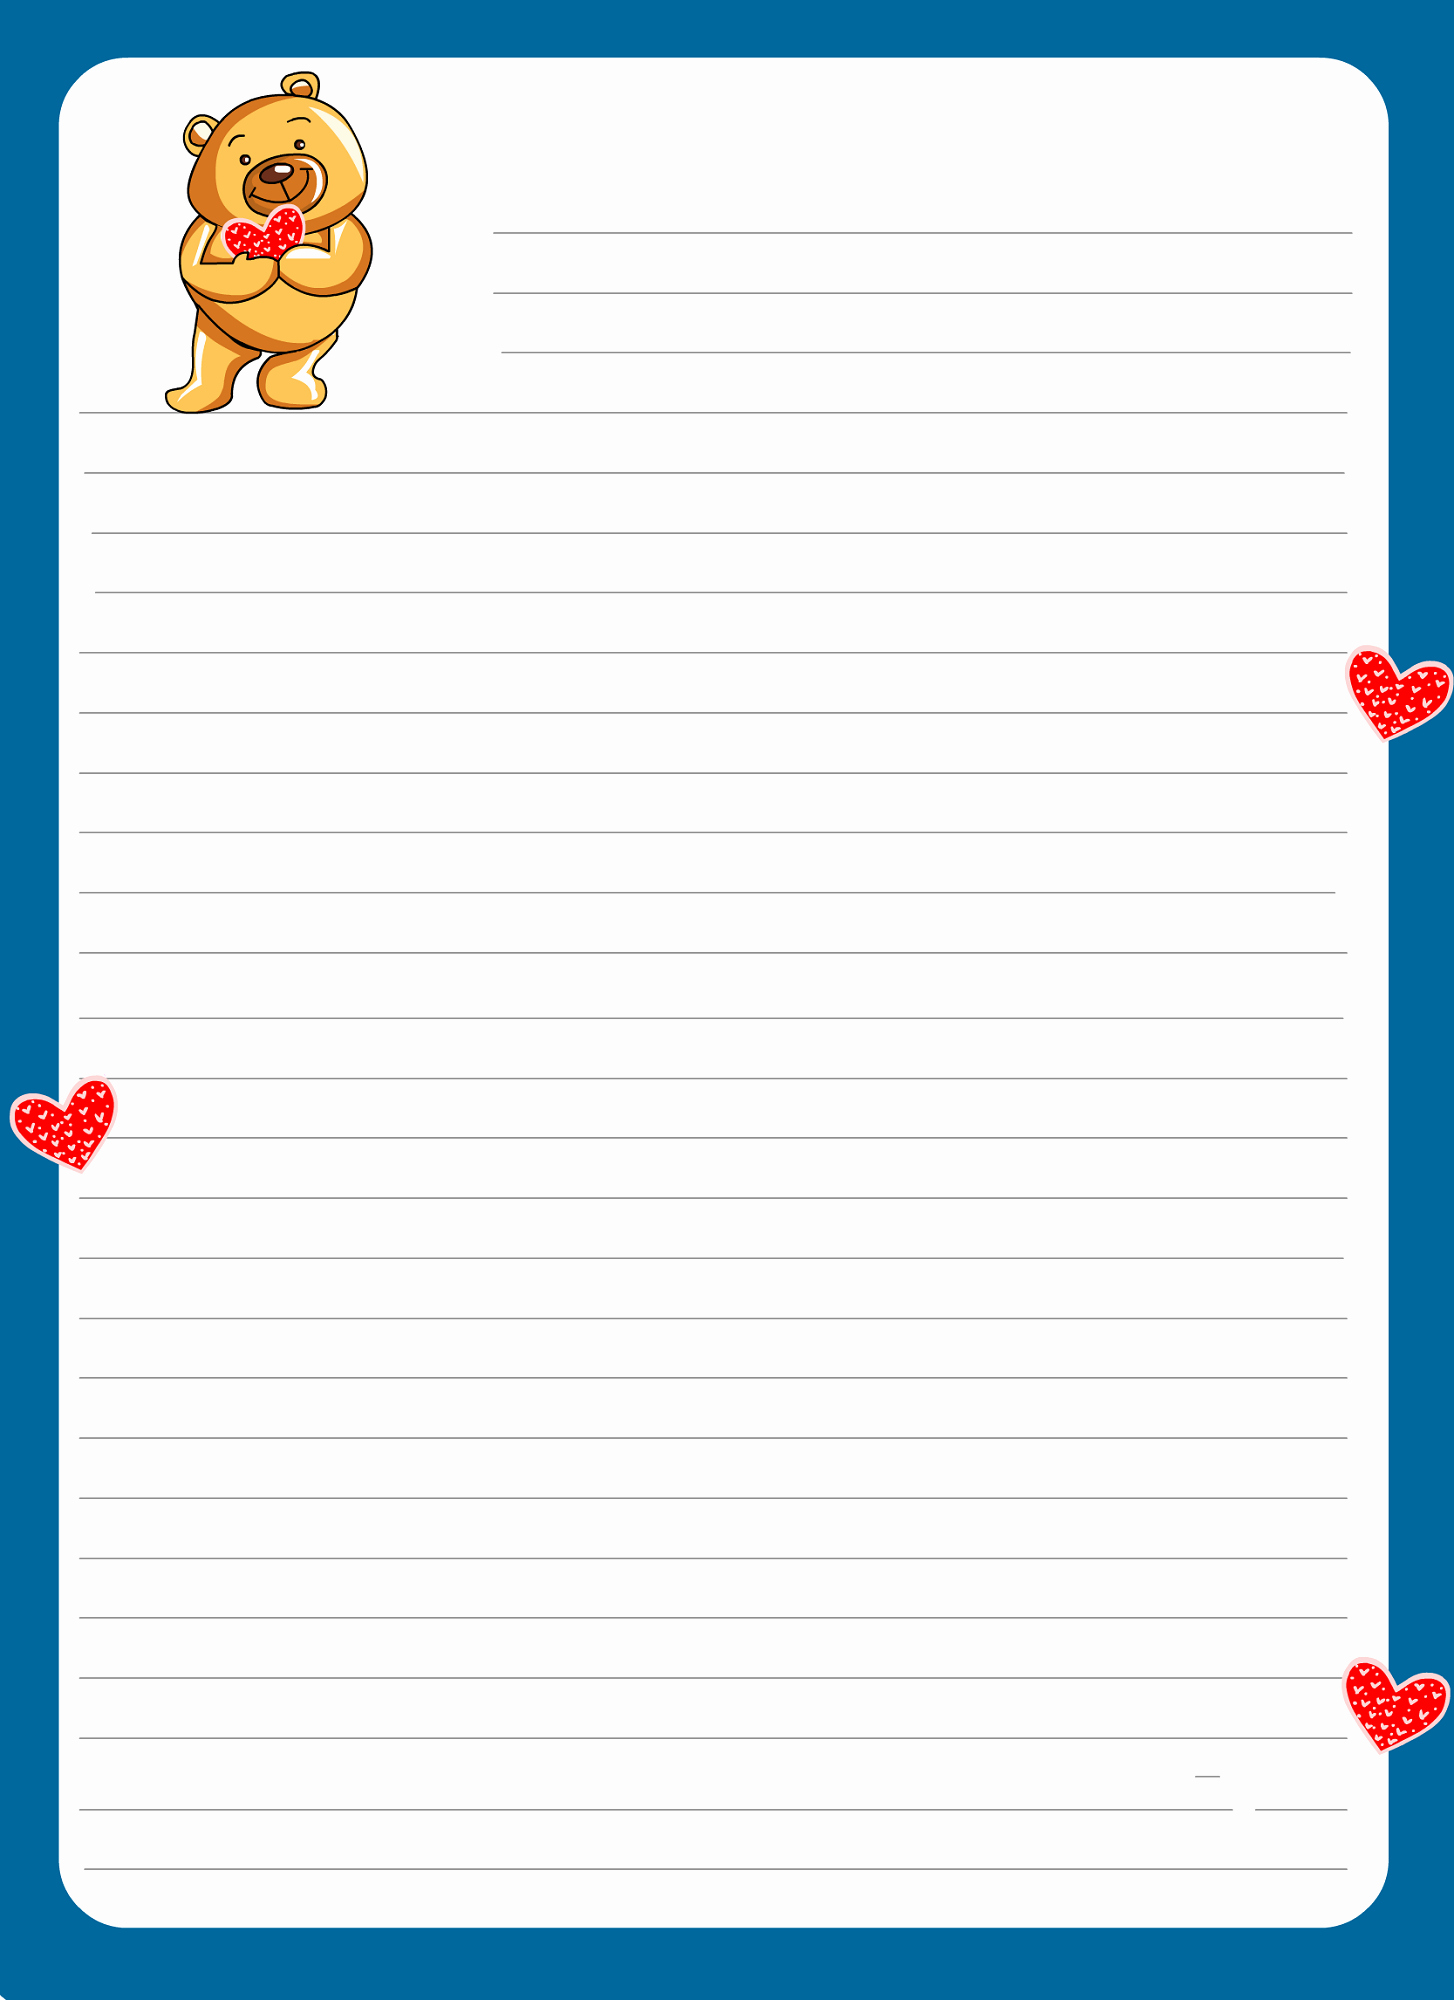 Lined Letter Writing Paper Awesome Lined Paper for Kids Notebook Paper Templates